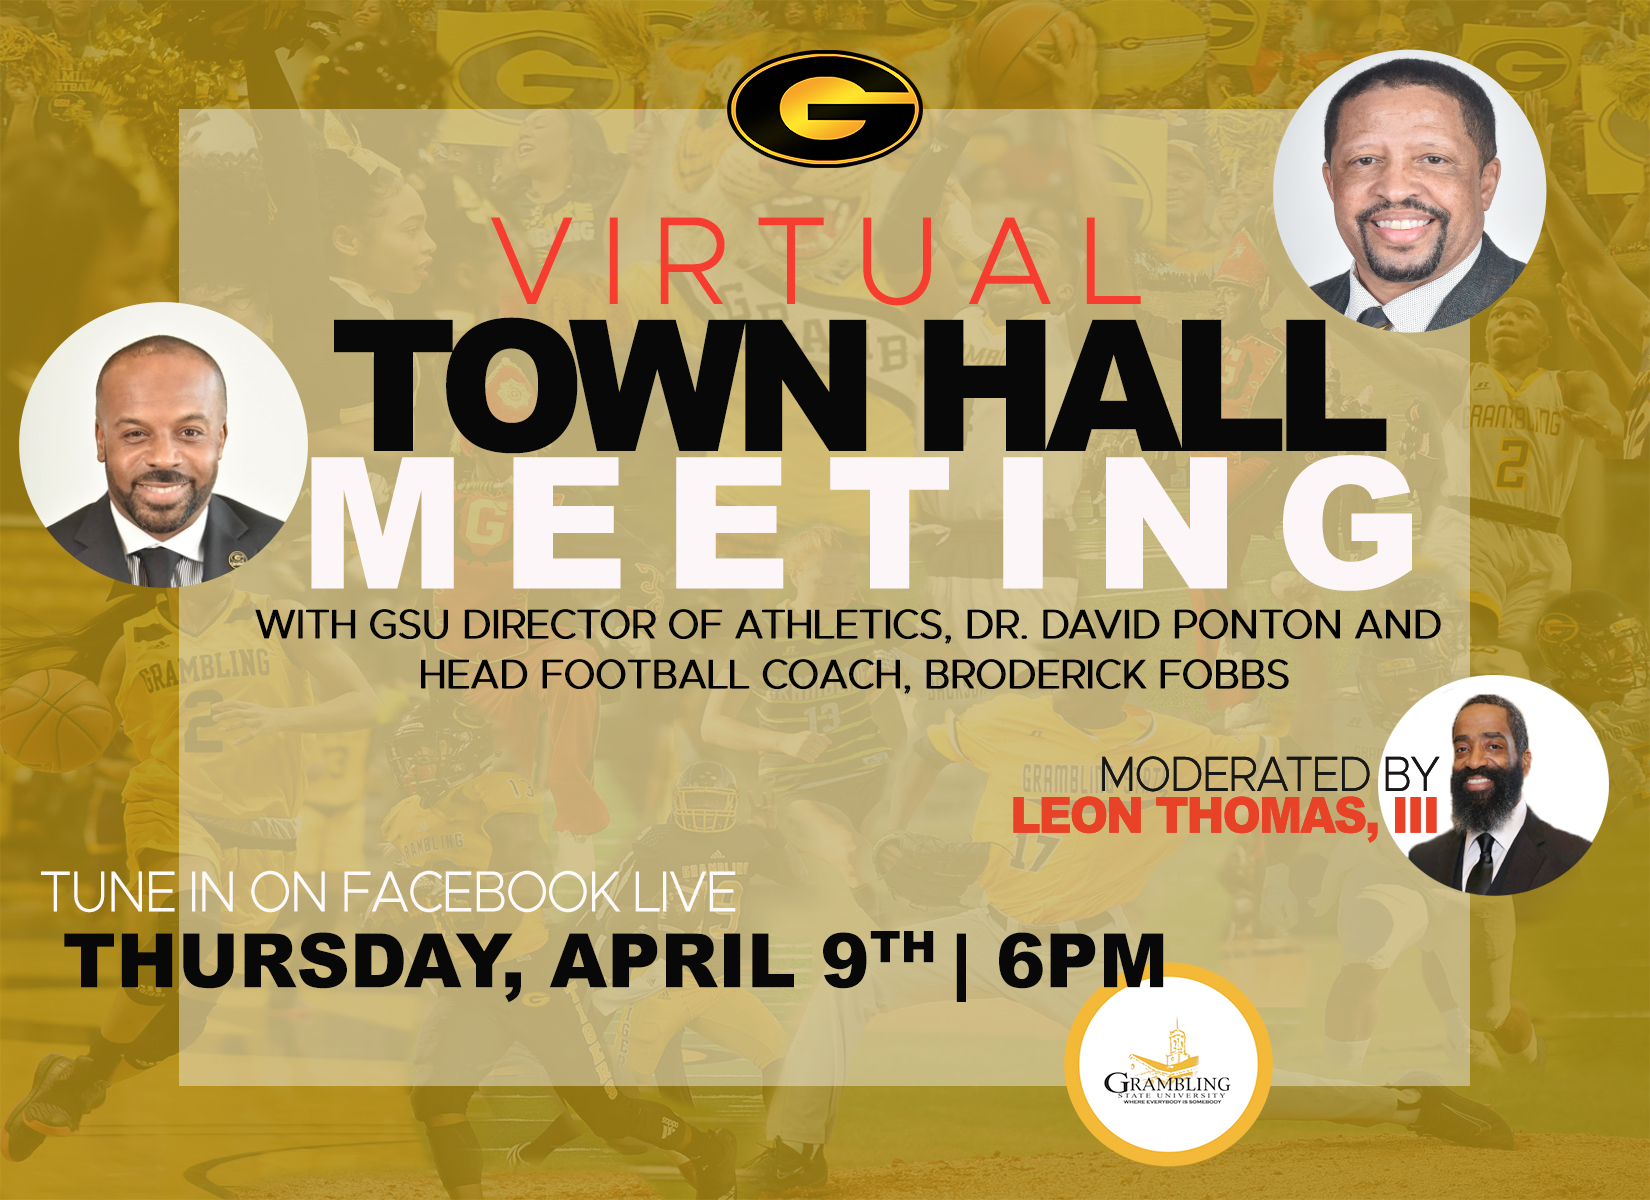 Virtual Town Hall Meeting with GSU Director of Athletics, Dr. David Ponton and Head Football Coach, Broderick Fobbs. Moderated by Leon Thomas, III. Tune in on Facebook Live Thurs., April 9th at 6pm.